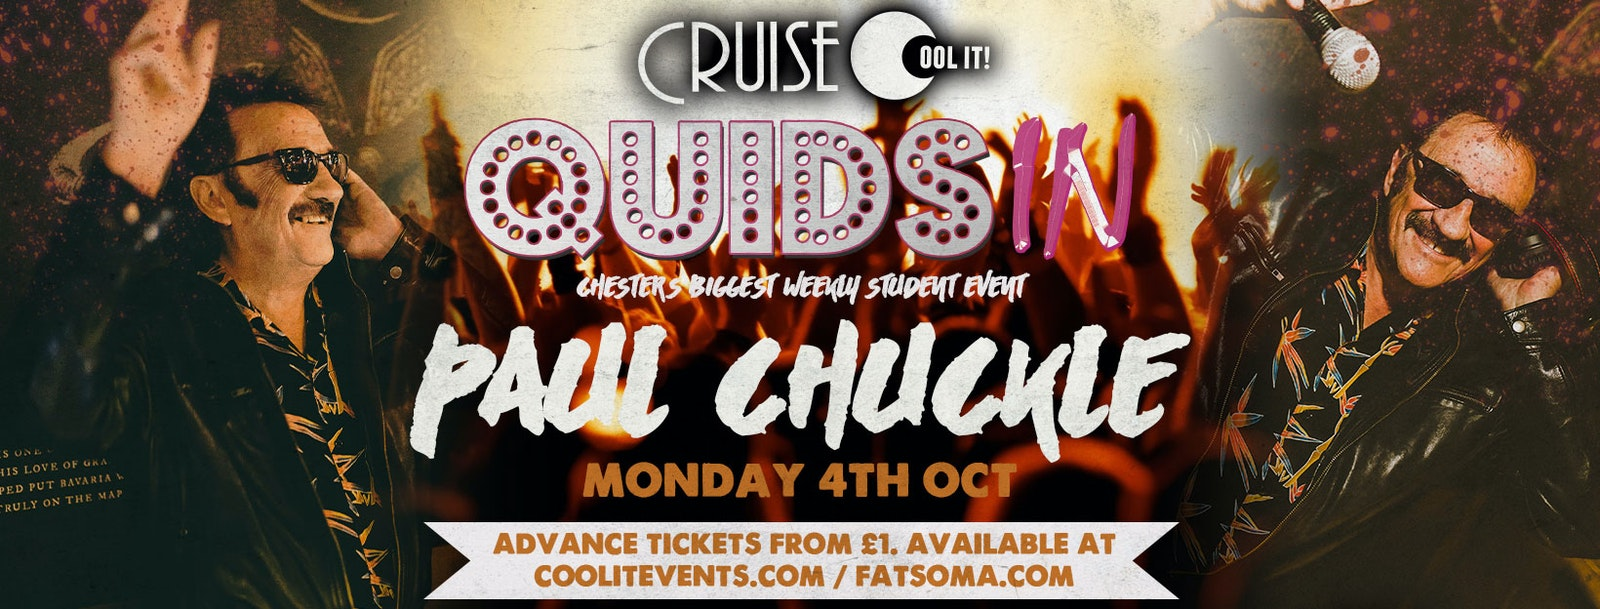 Quids In Mondays – hosted by Paul Chuckle!